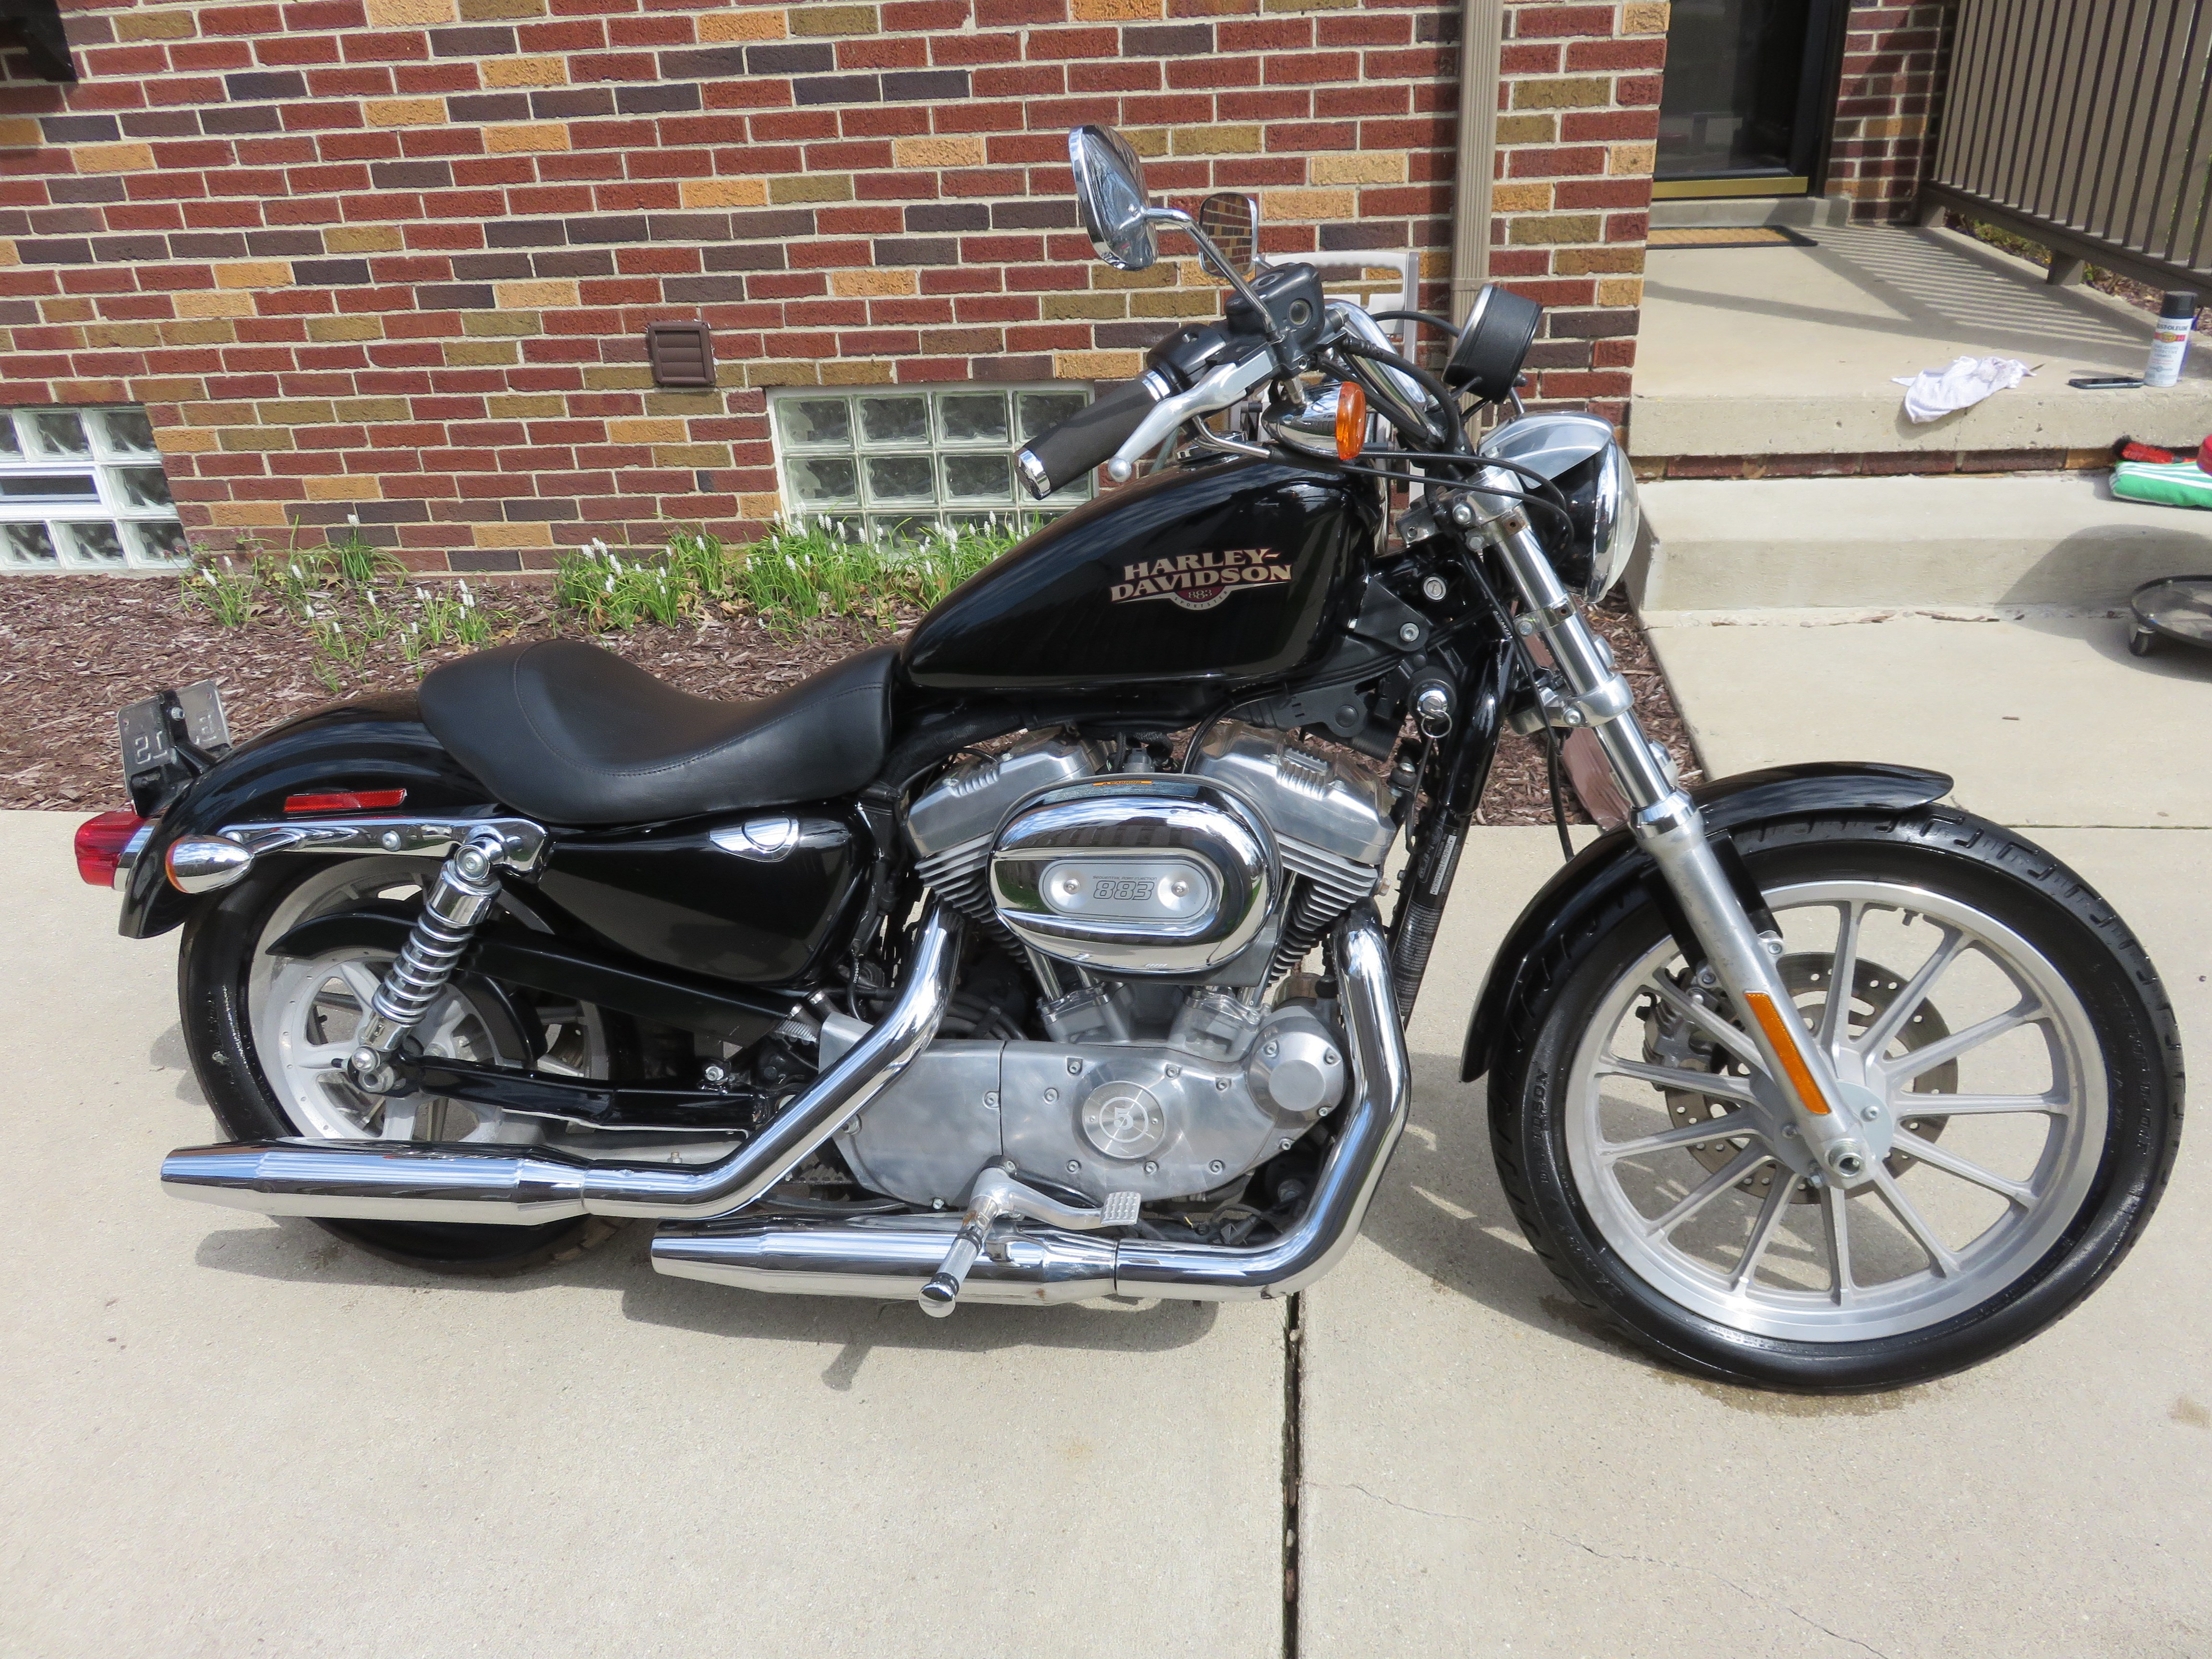 2009 harley davidson xlh 883 sportster 883 black plymouth michigan 719333 chopperexchange. Black Bedroom Furniture Sets. Home Design Ideas